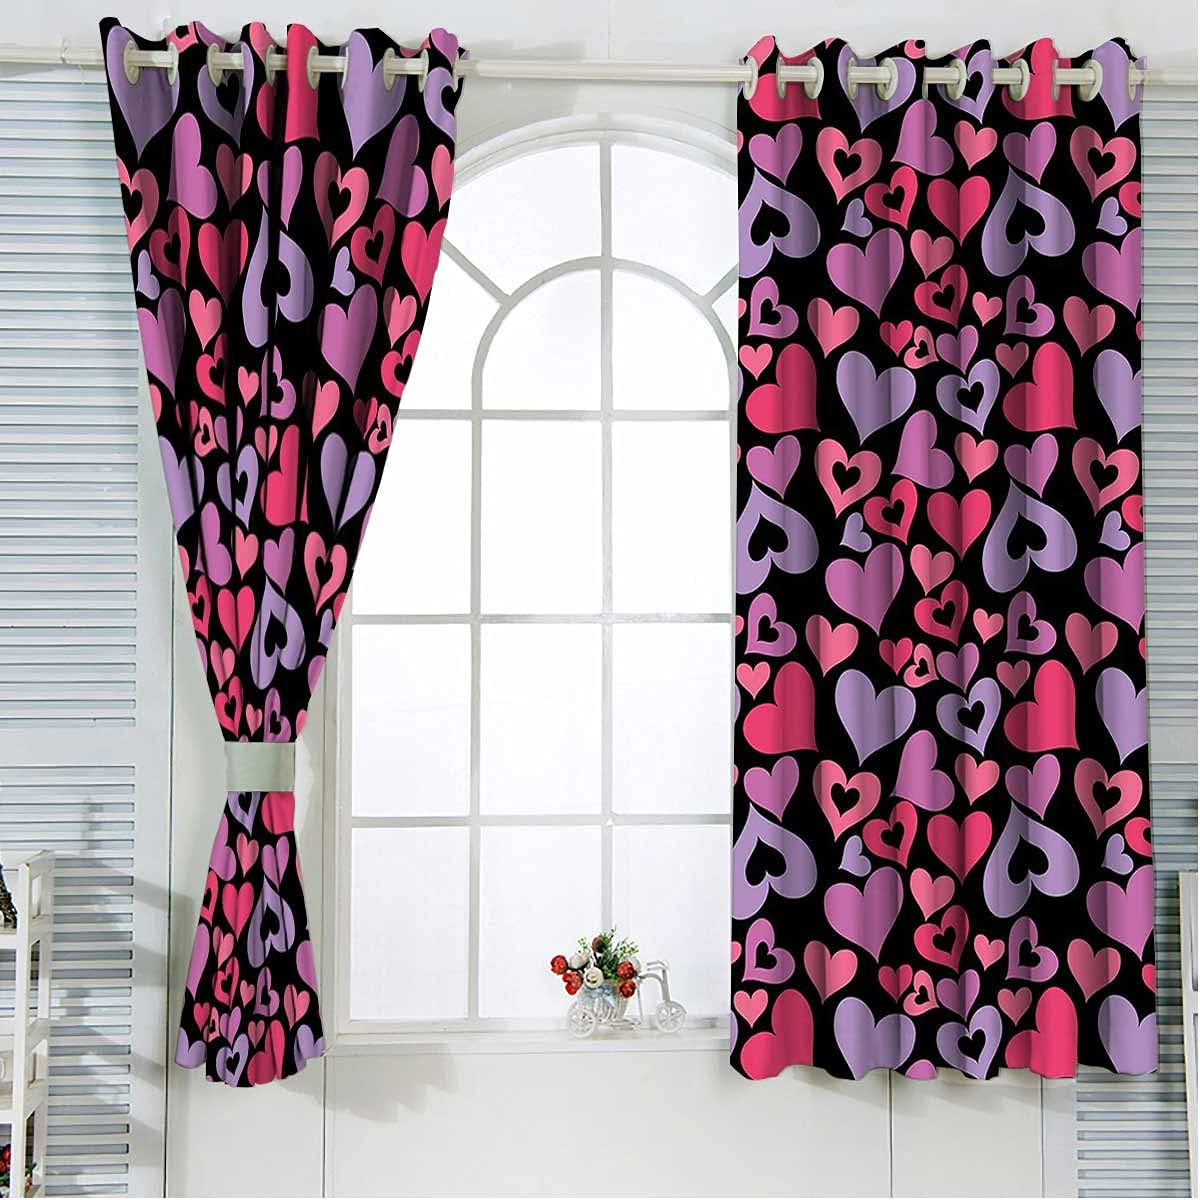 Blackout Curtain Panels Mail order 2 Set 63 Be super welcome Hearts Length Inches Pinkish V